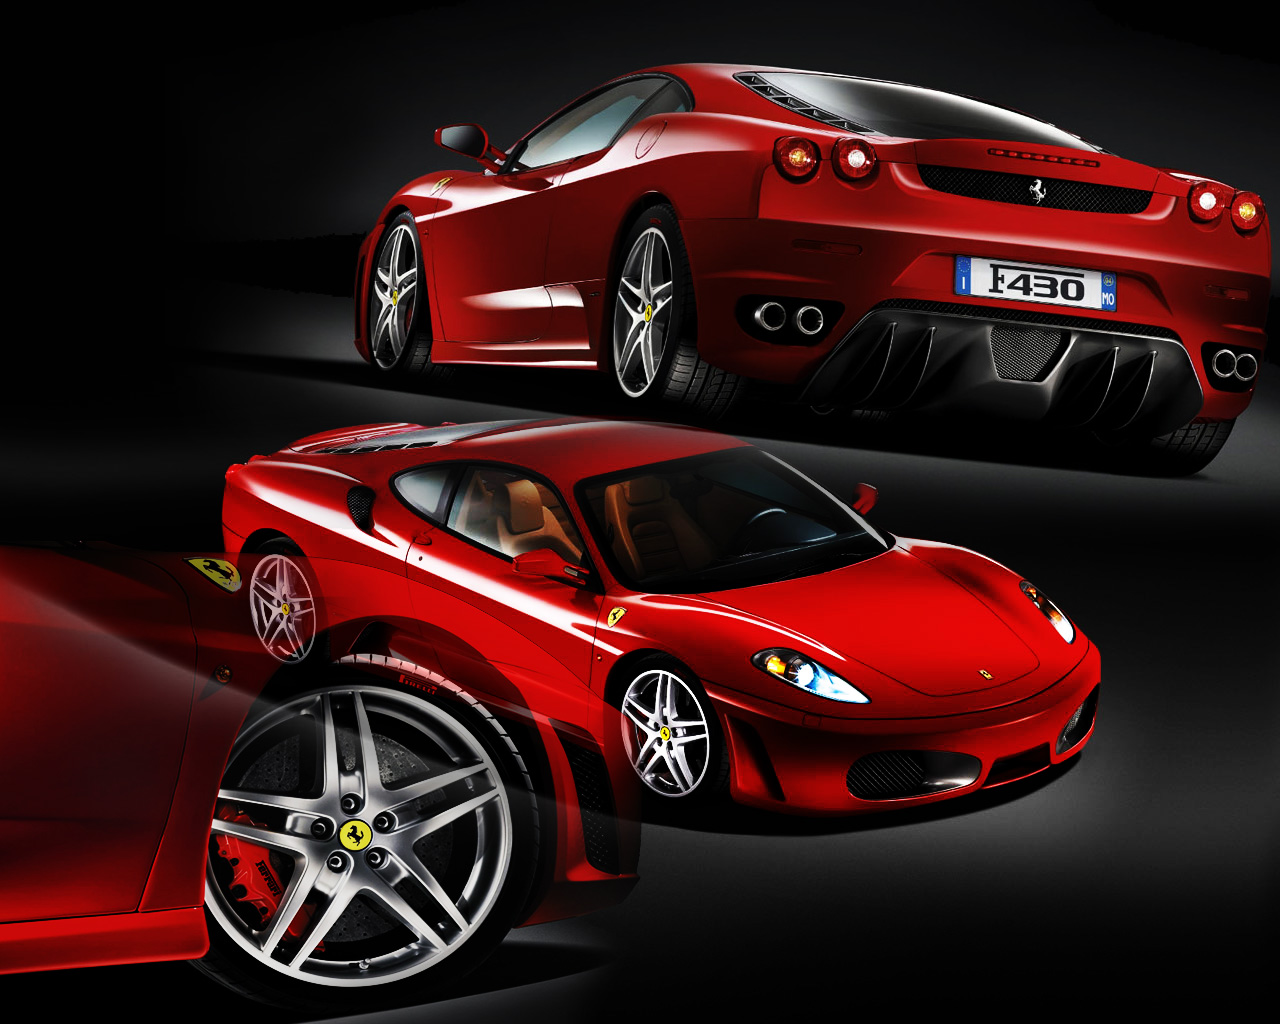 Design new ferrari cars accessories and interiors ferrari f430 design new ferrari cars accessories and interiors vanachro Image collections